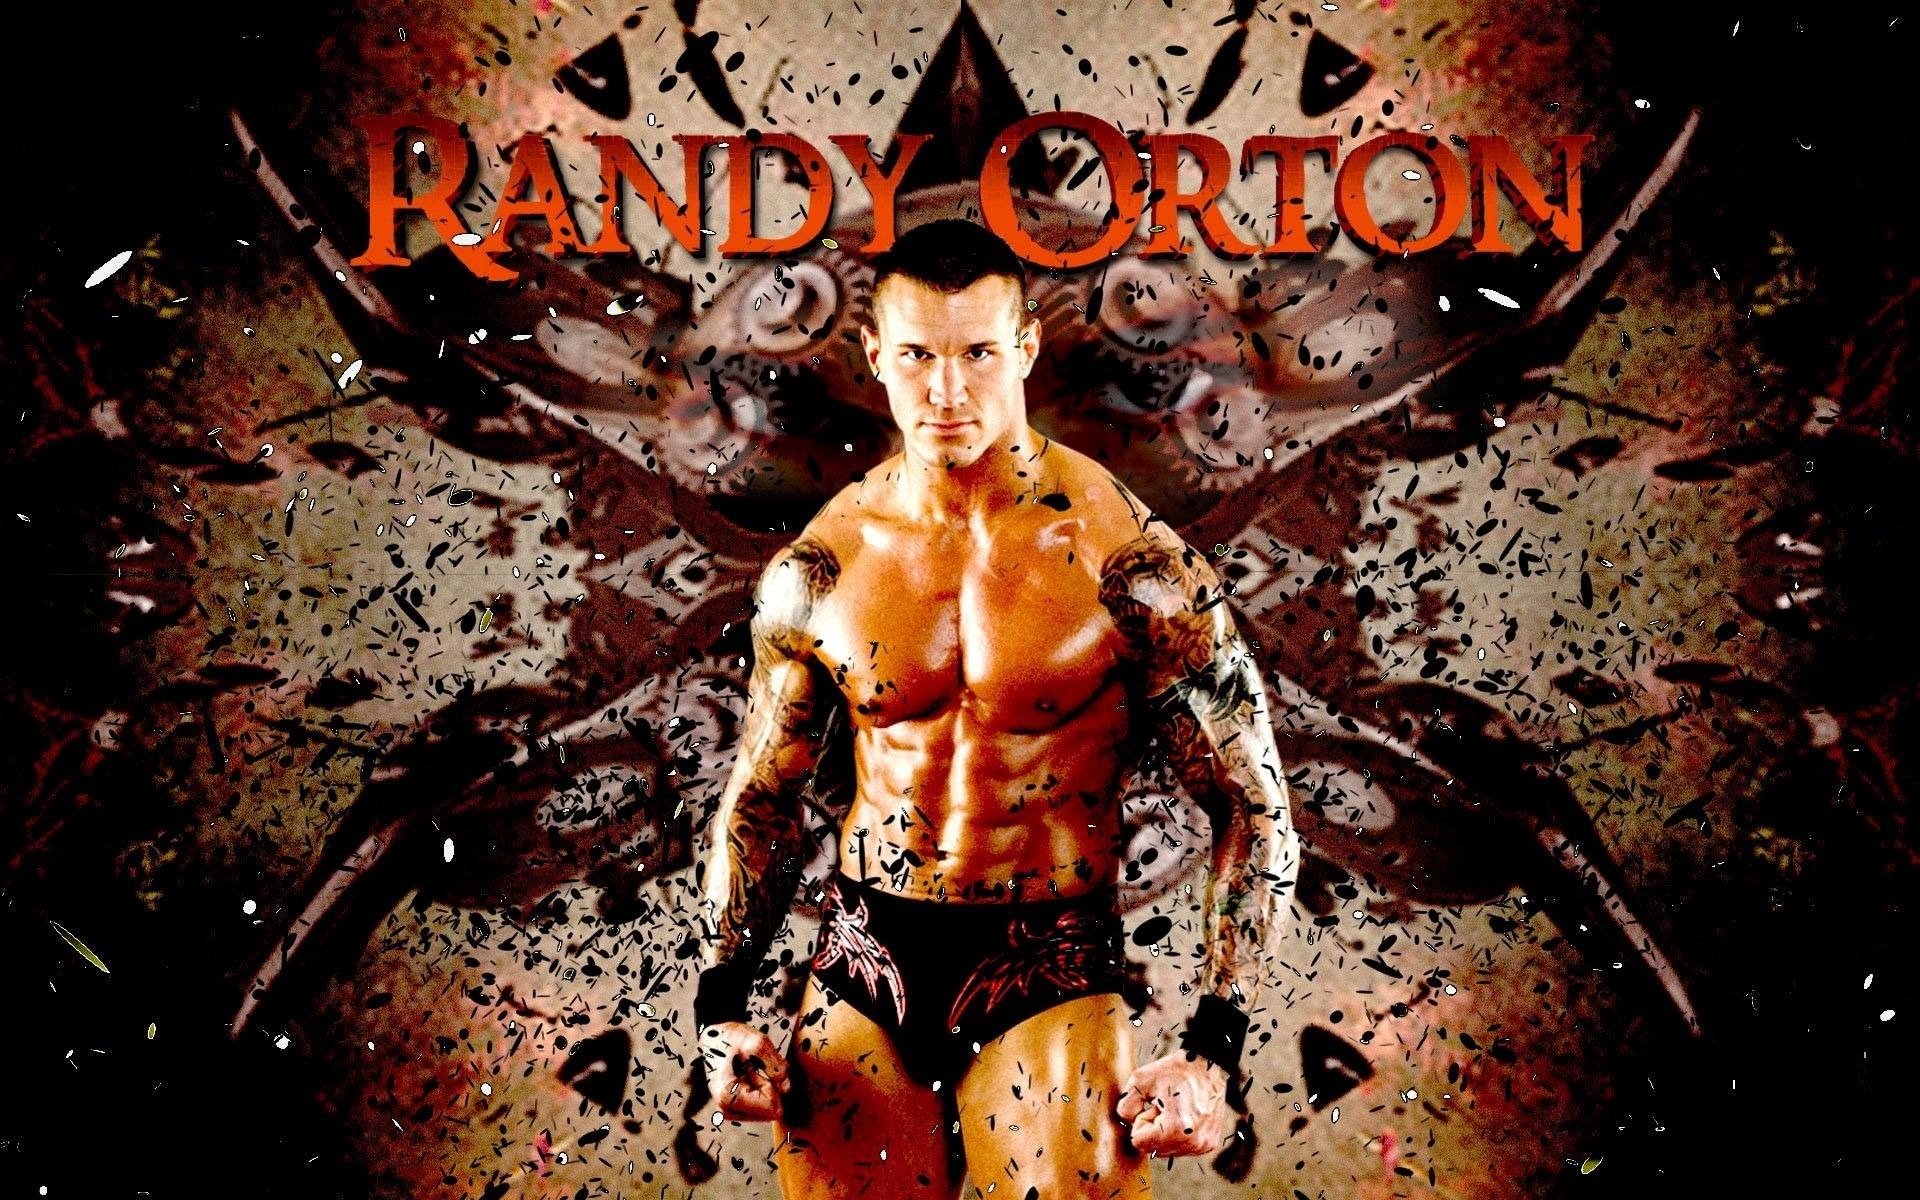 HD WWE Randy Orton Smiley Faces Wallpapers 2015 – Wallpaper Cave